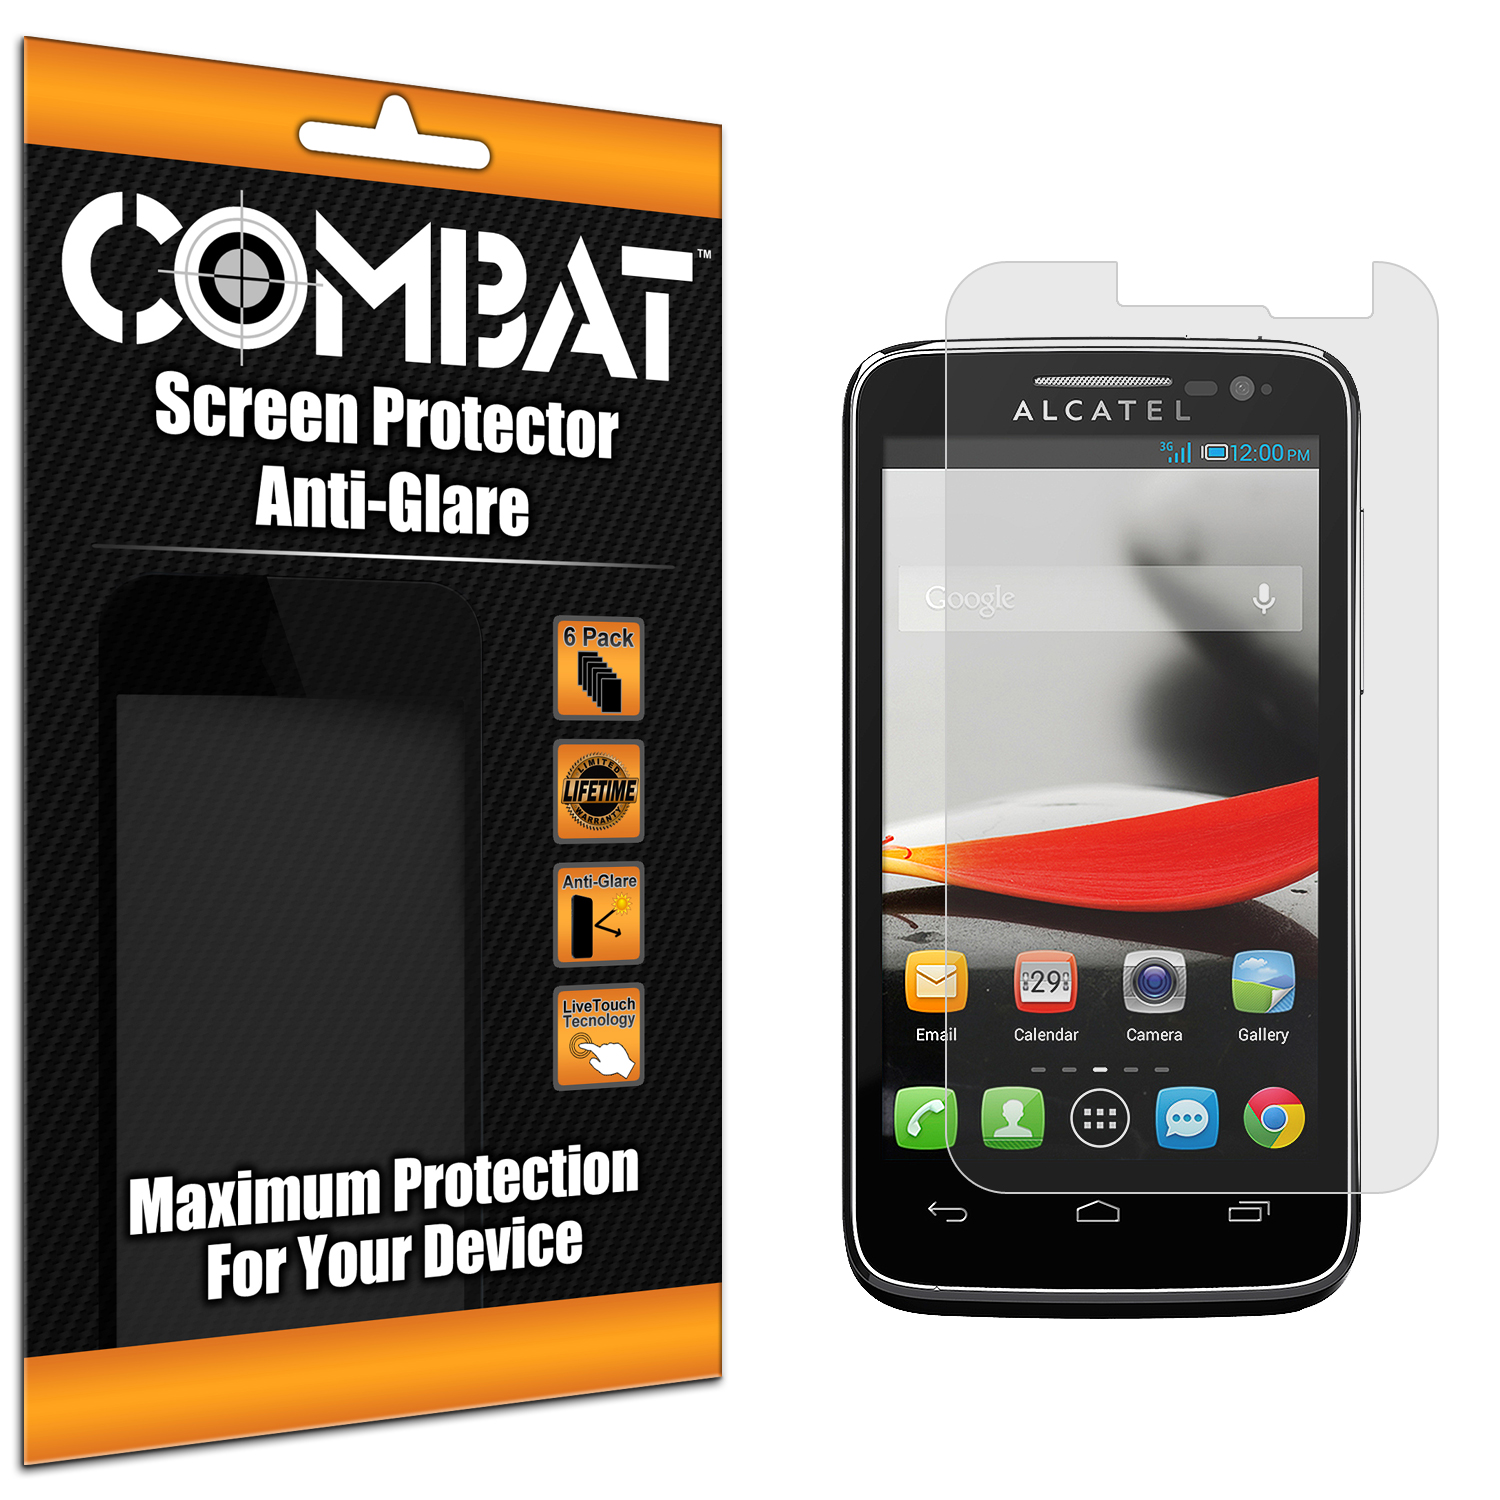 Alcatel One Touch Evolve 5020T Combat 6 Pack Anti-Glare Matte Screen Protector